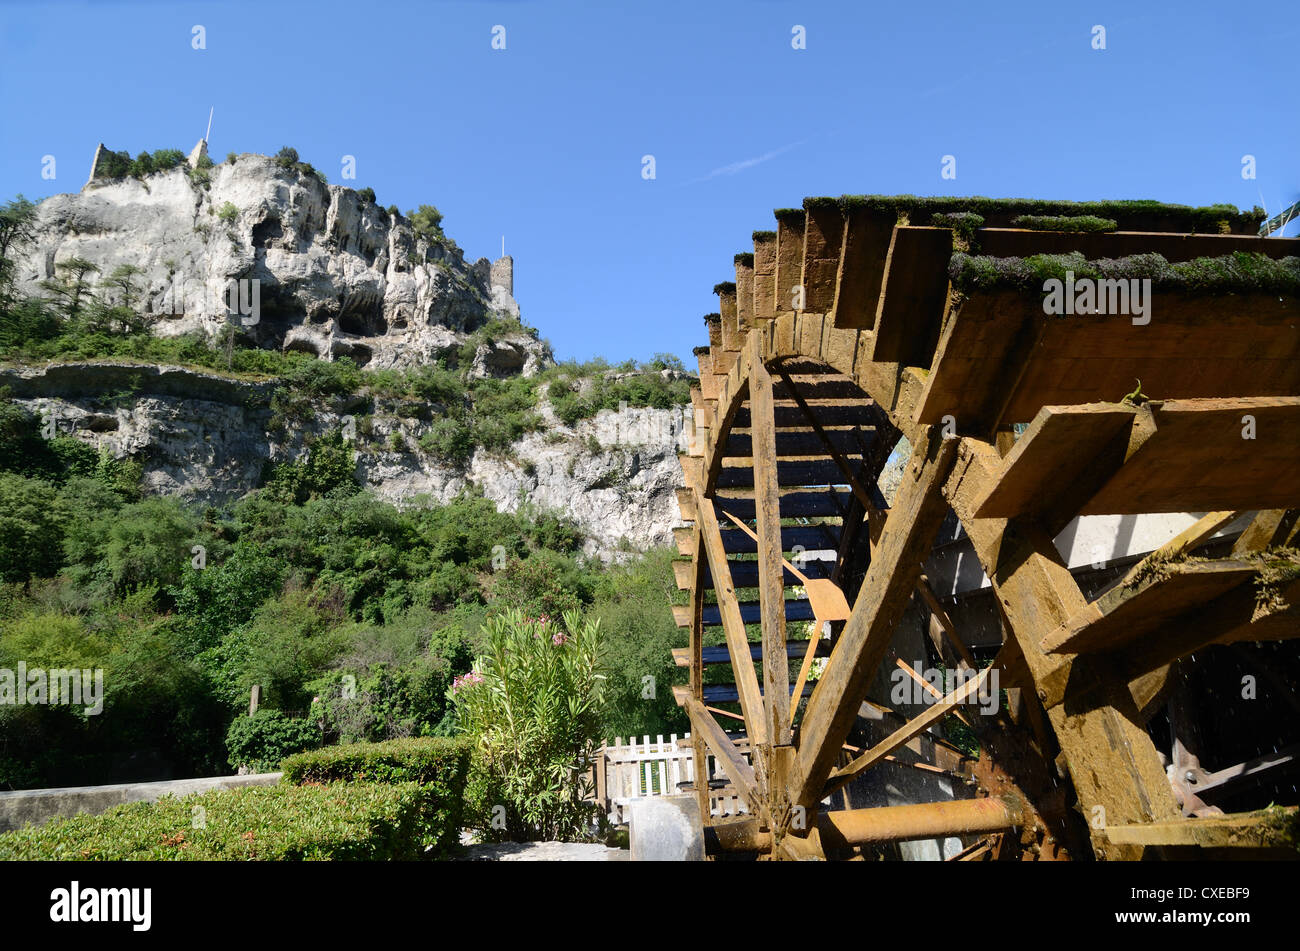 Water Wheel and Ruined Castle or Château at Fontaine-de-Vaucluse Provence France - Stock Image